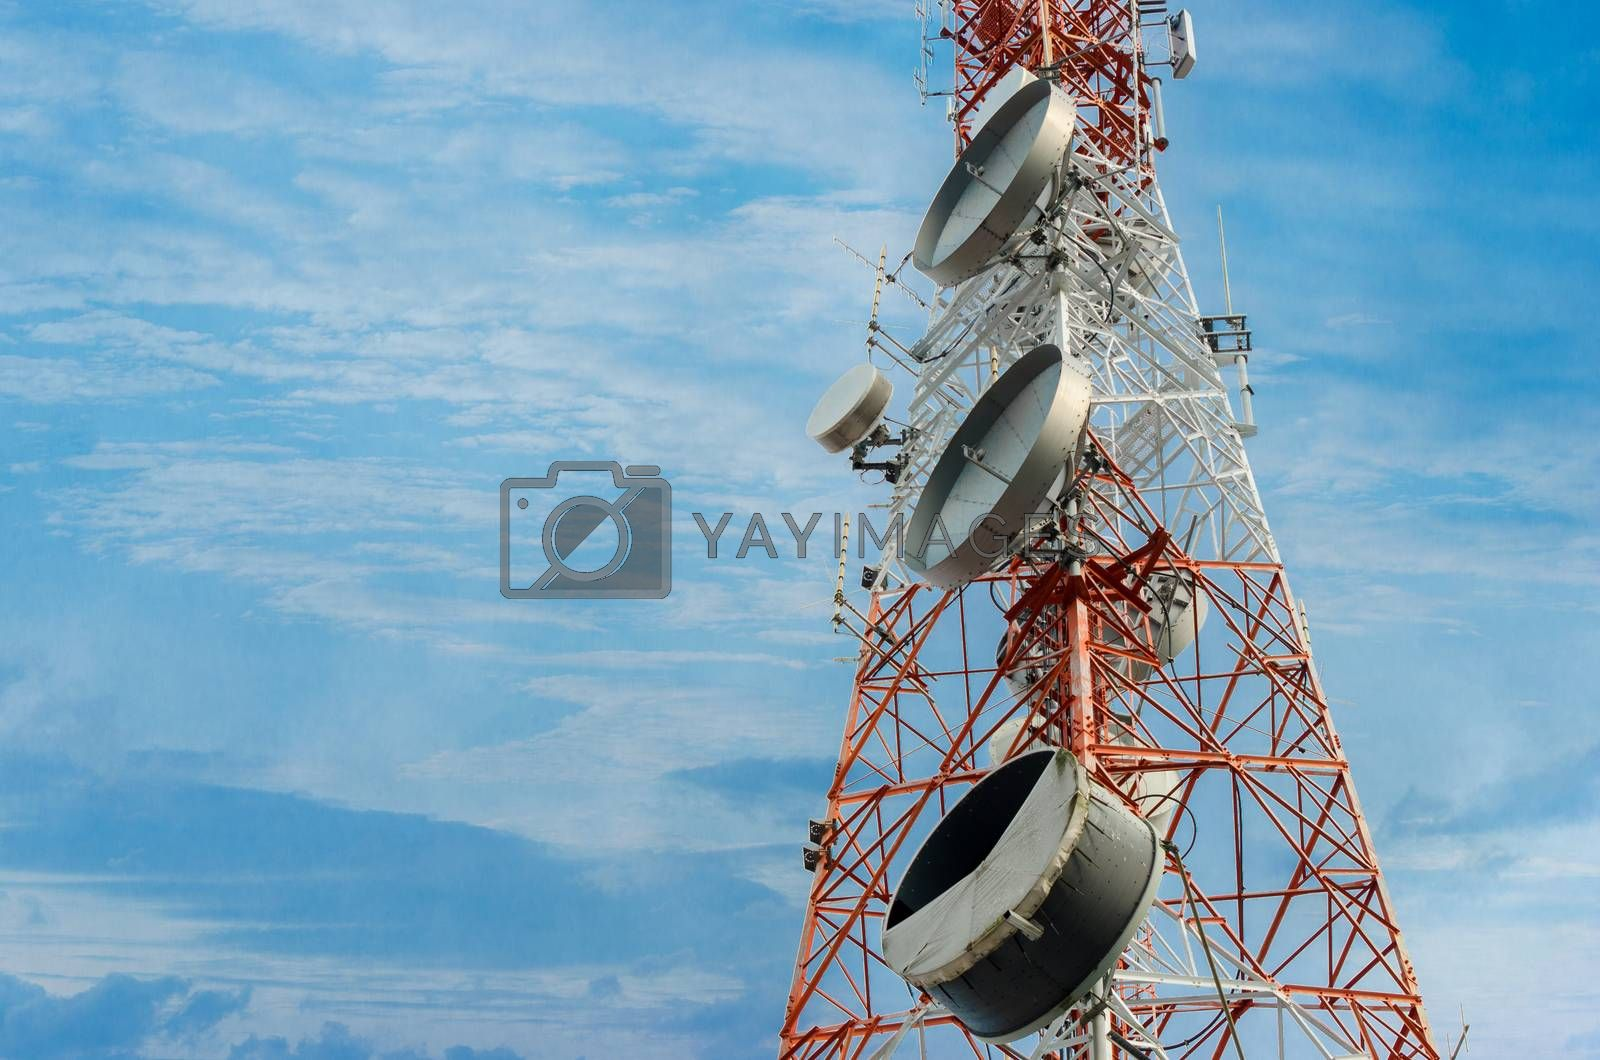 Telecommunication tower antenna In the clear sky by Sarayut